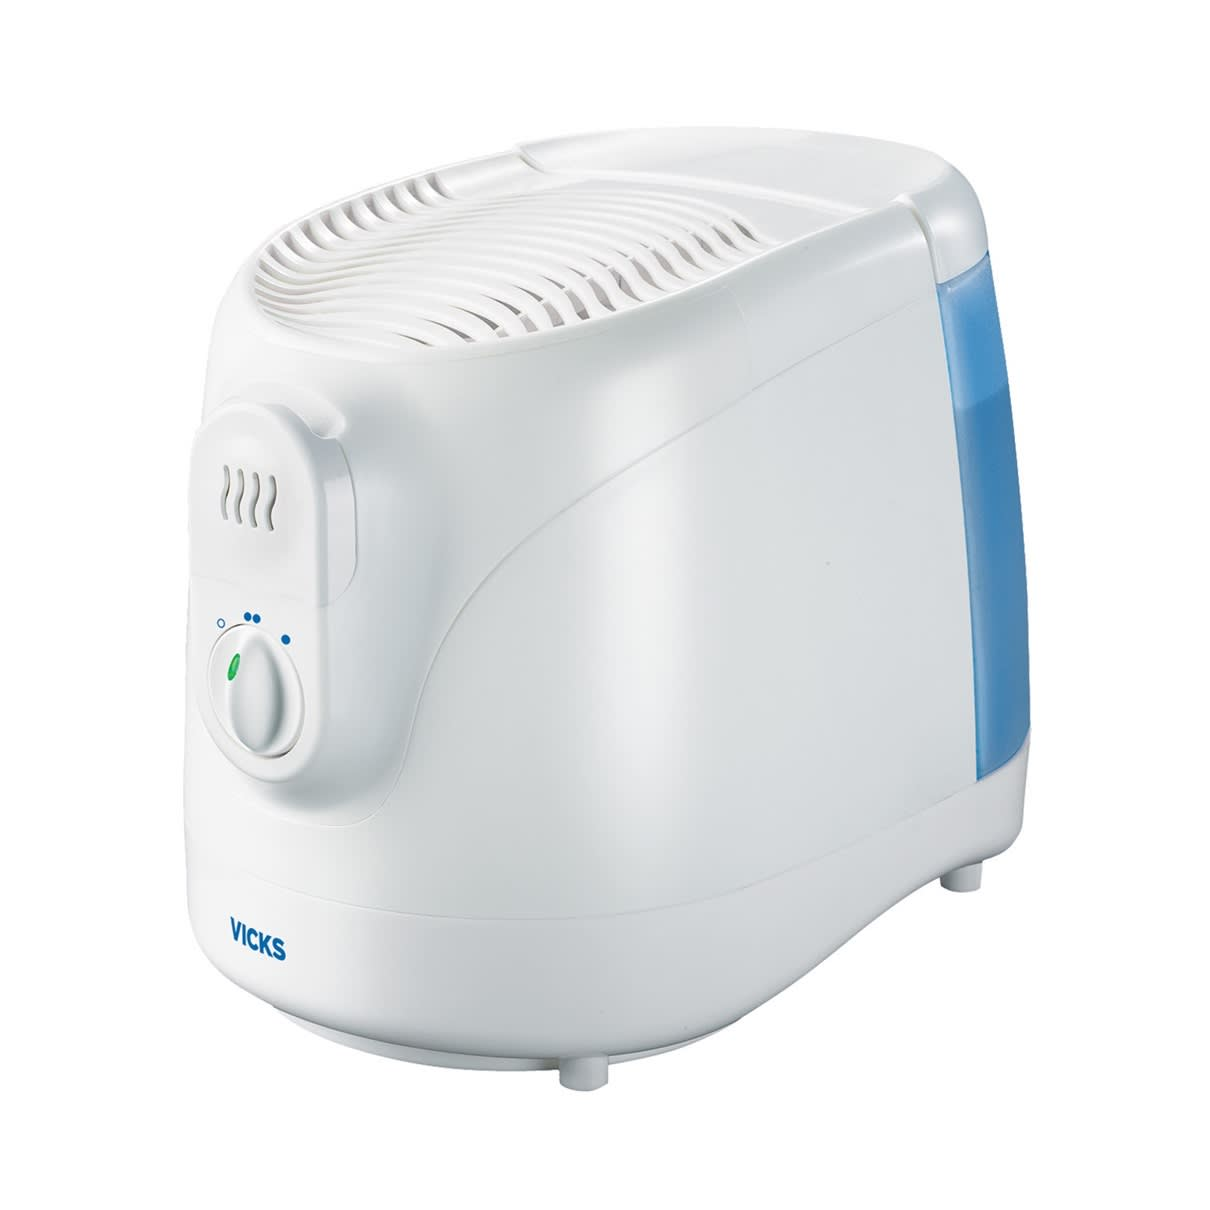 vev320c-vicks-r-filtered-cool-moisture-humidifier